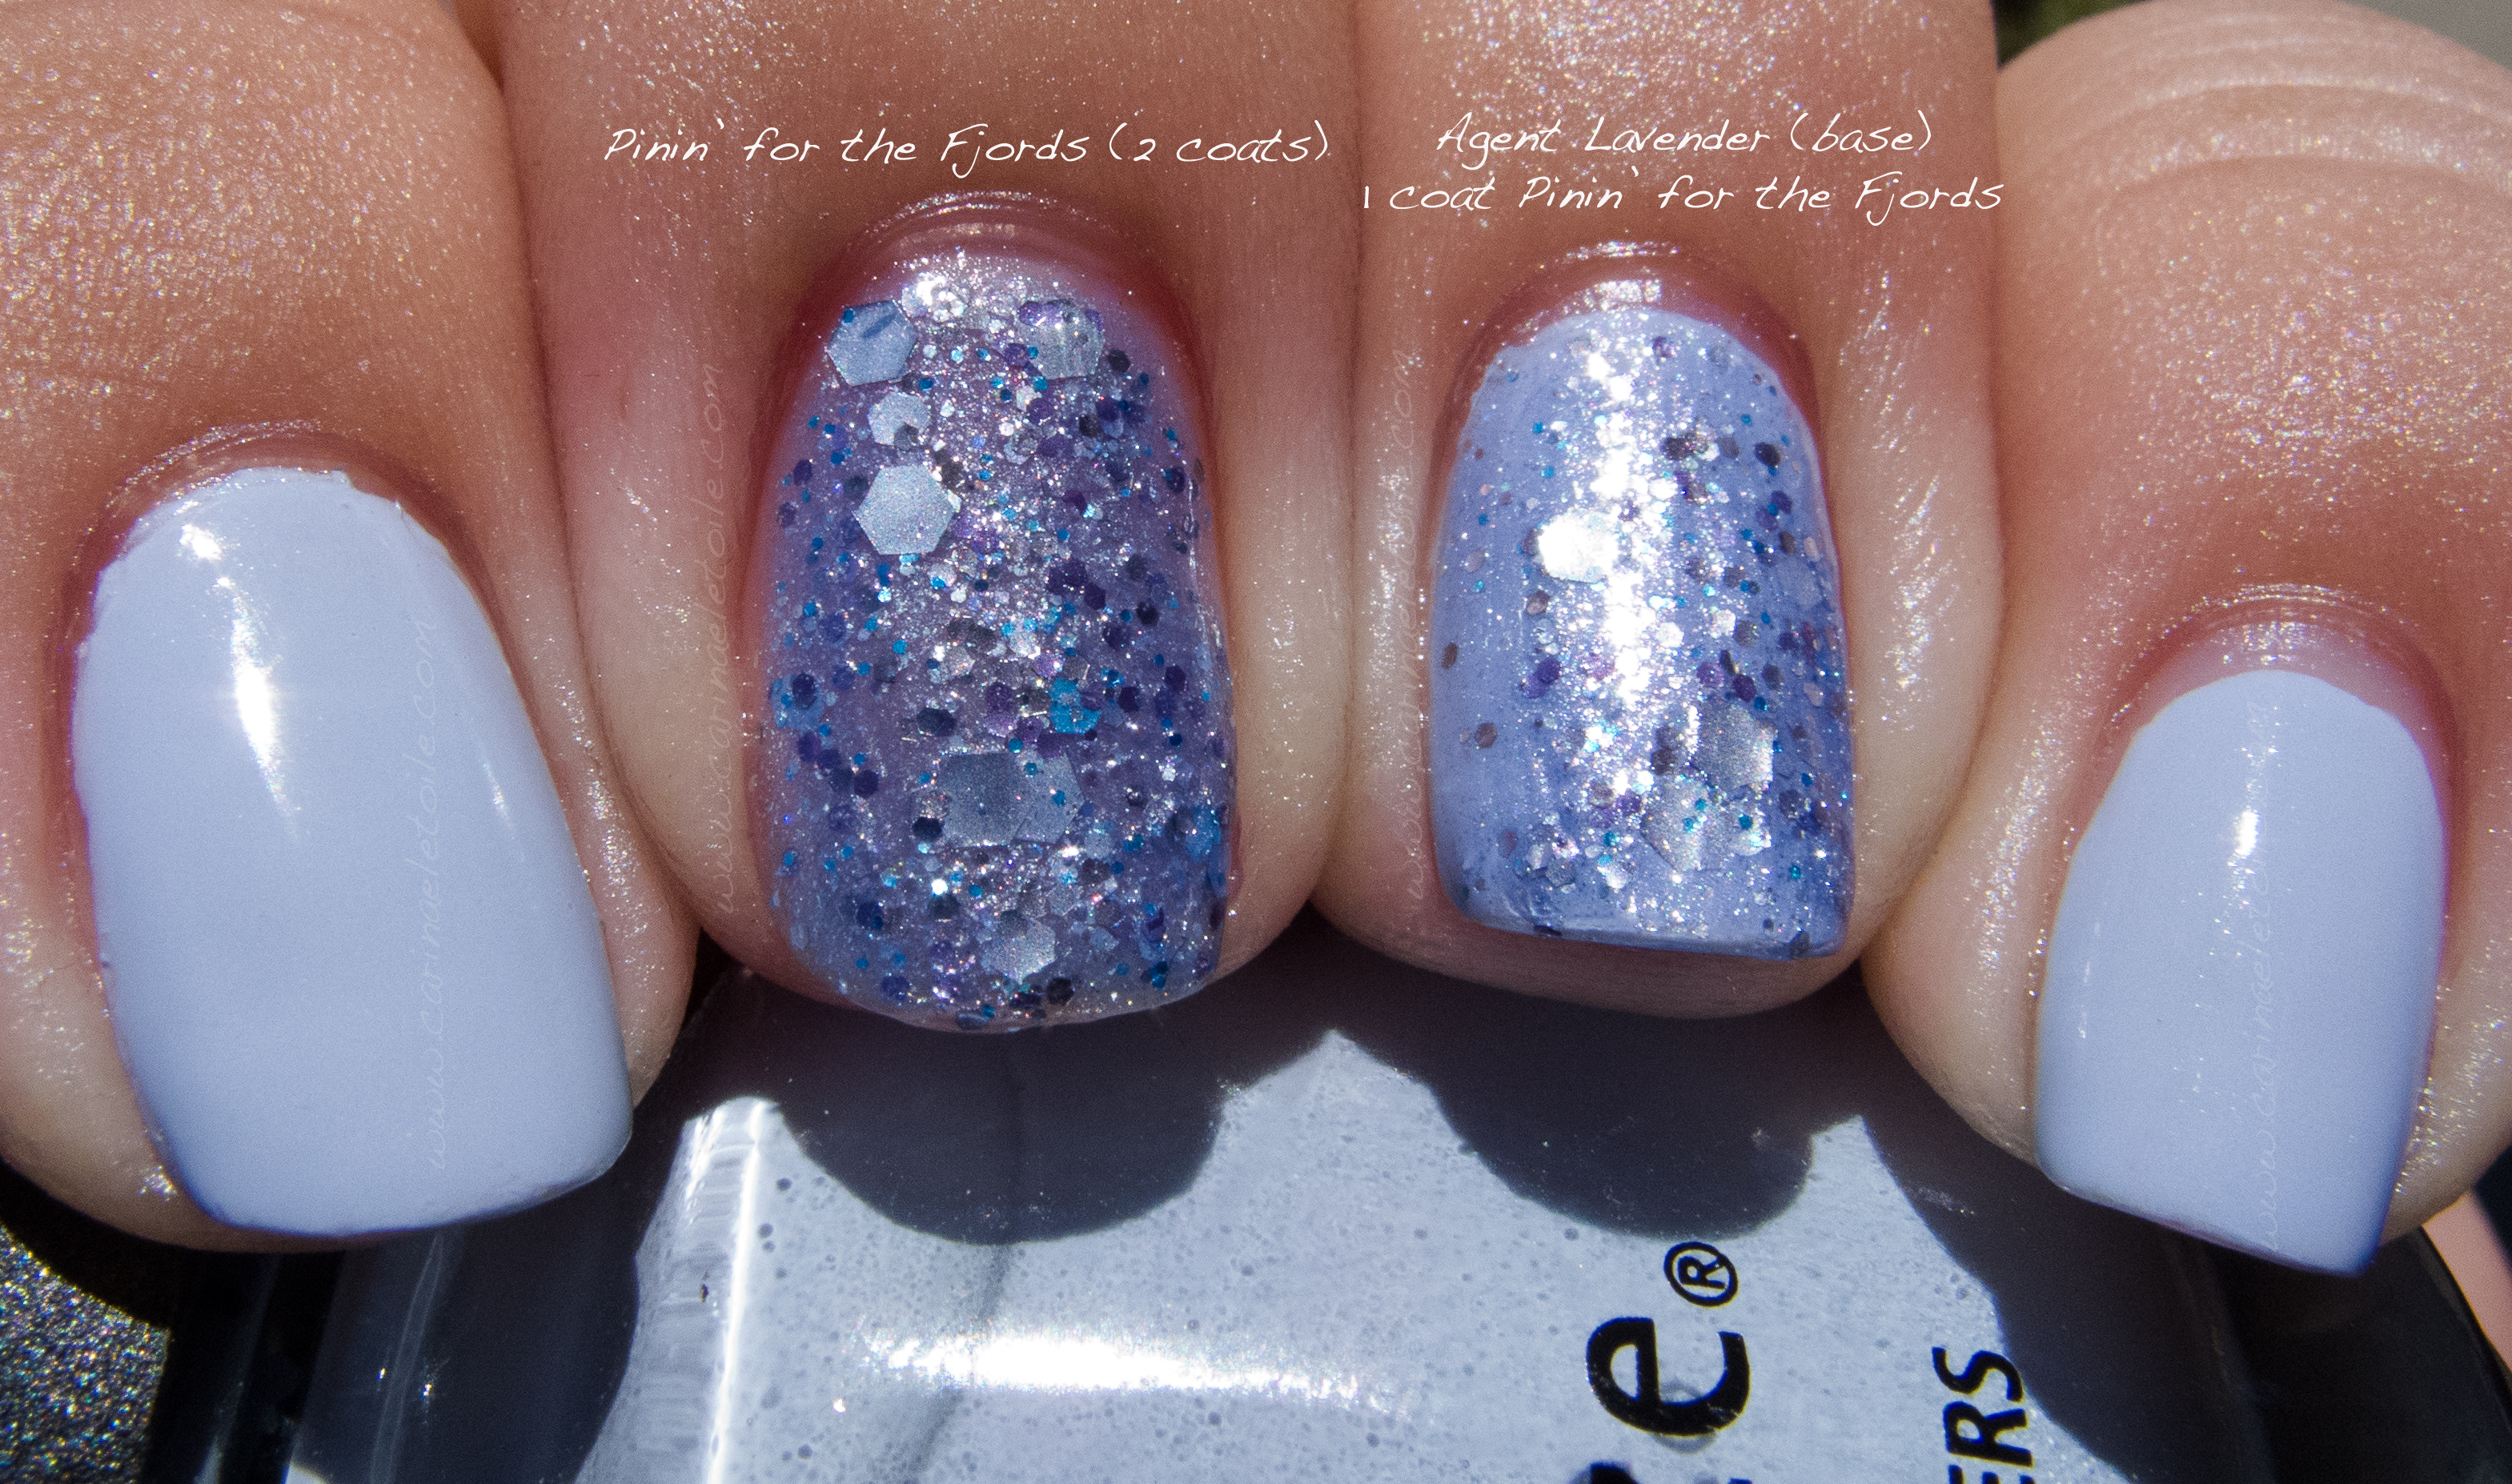 China Glaze Agent Lavender and Nerd Lacquer Pinin for the FJords Sun